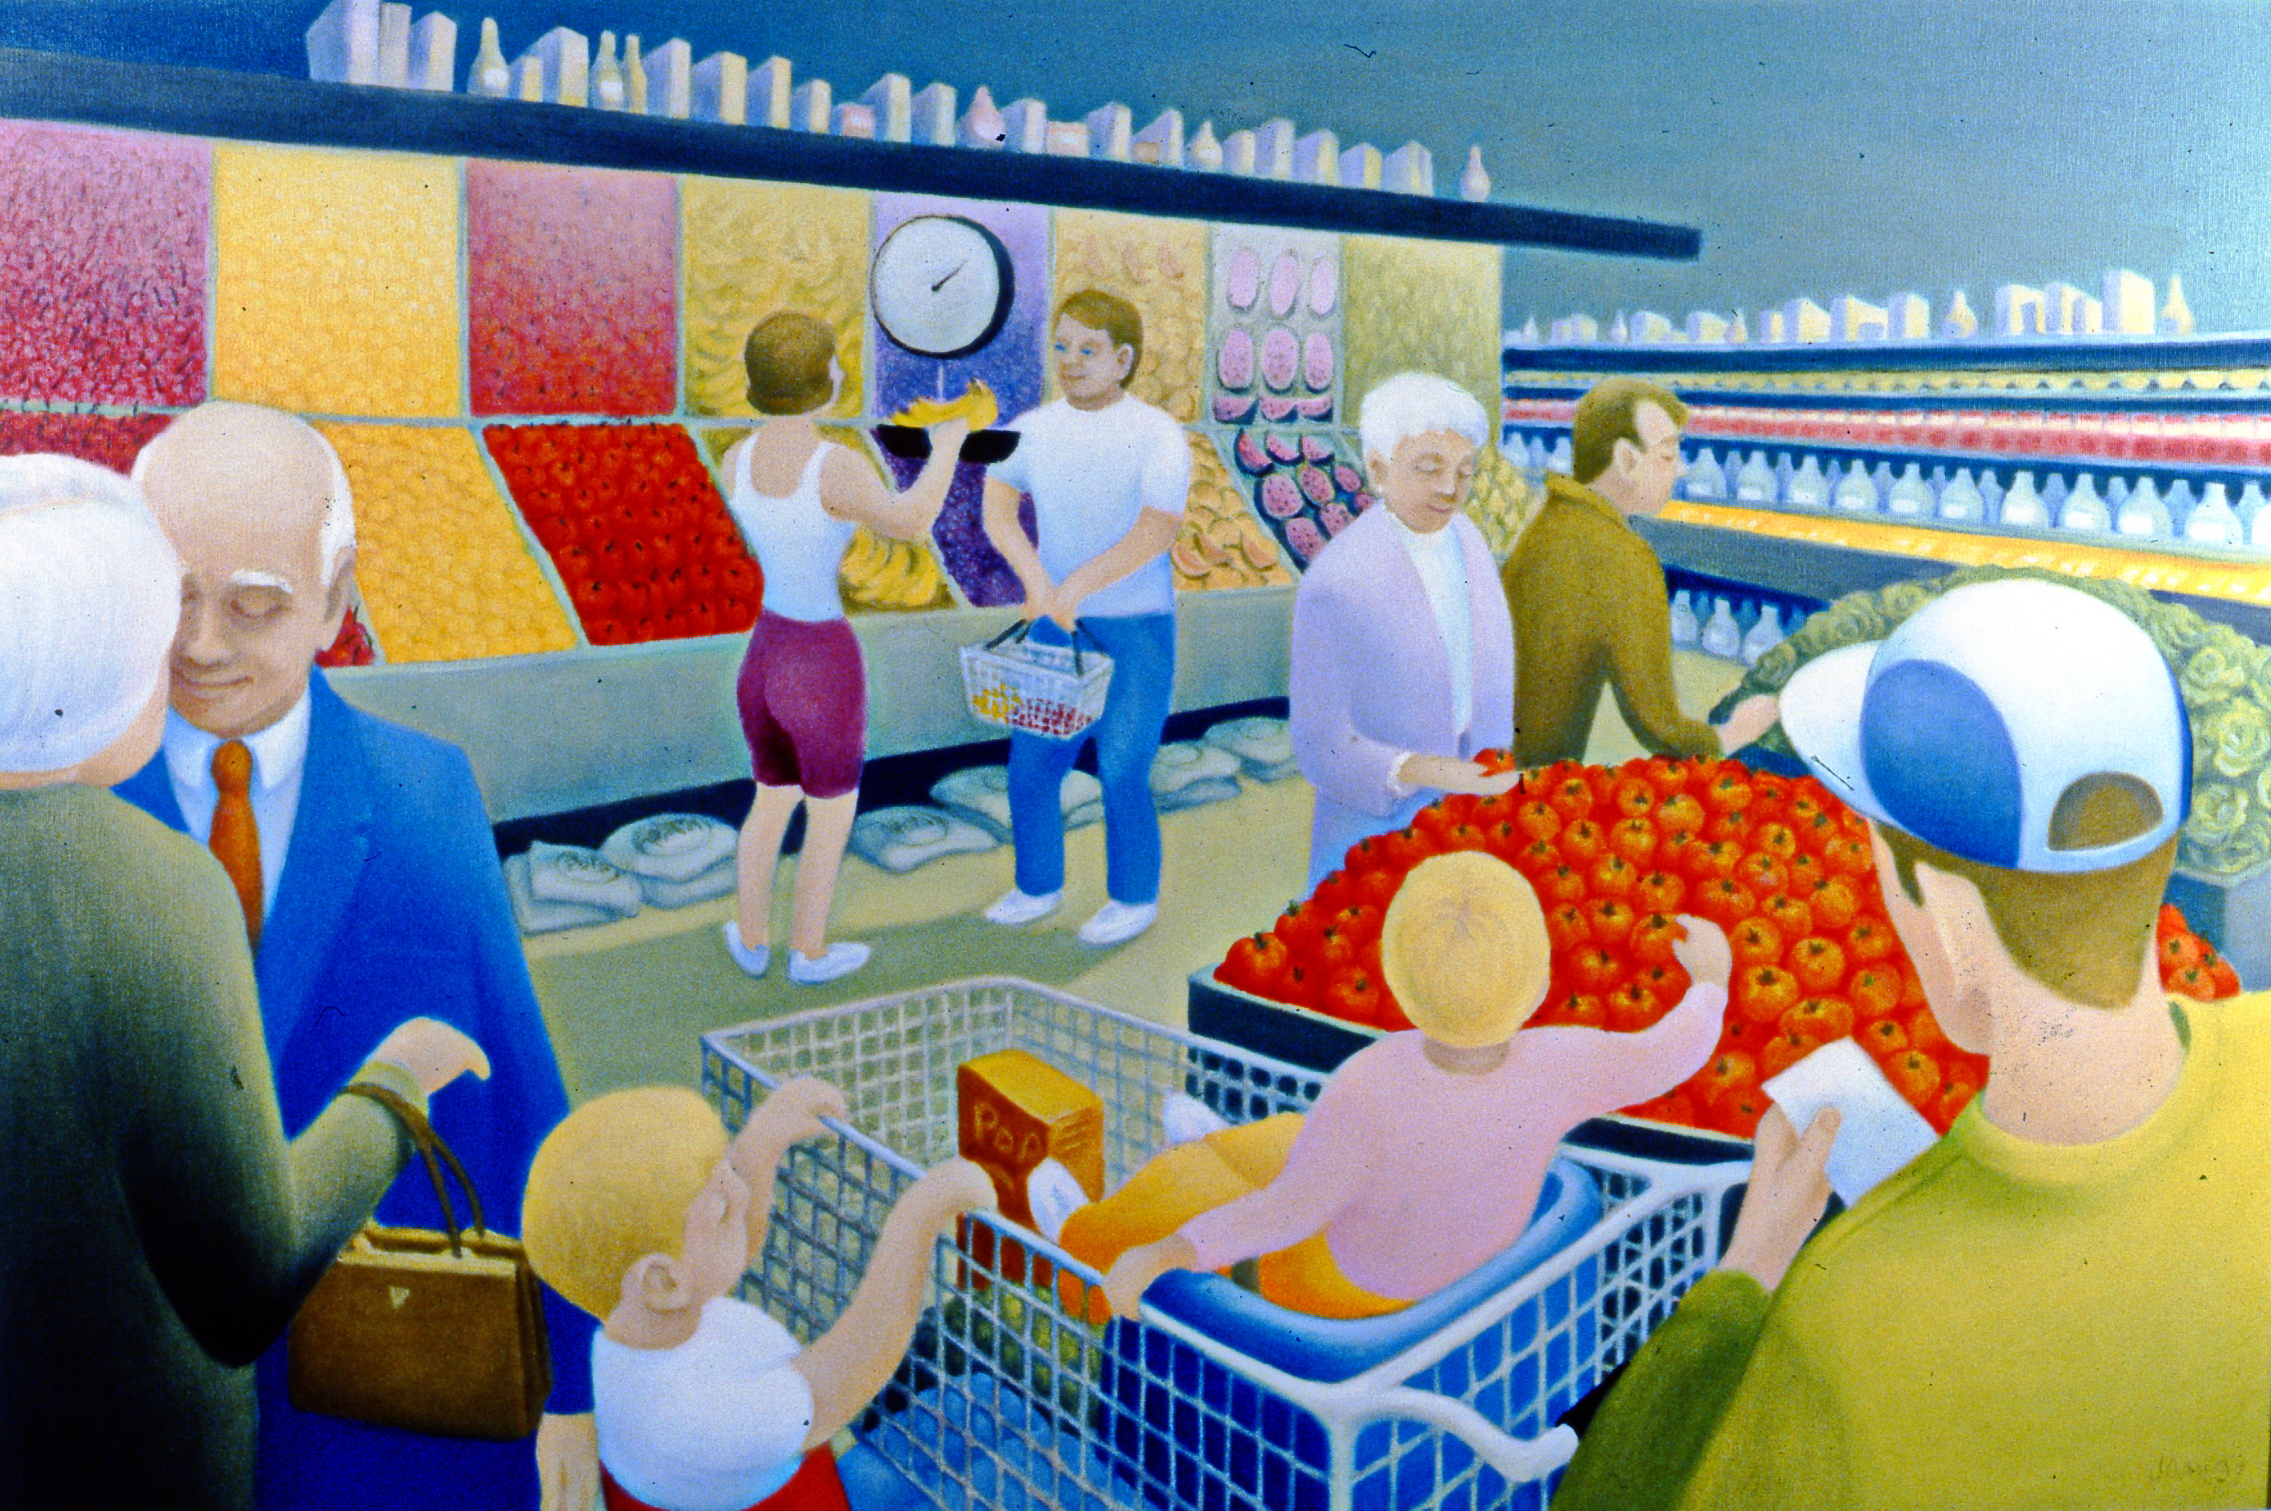 """Yes Dear, 1997, Joan MacGregor, oil painting, 24"""" x 36"""", 2001.01.01, gift of the artist"""